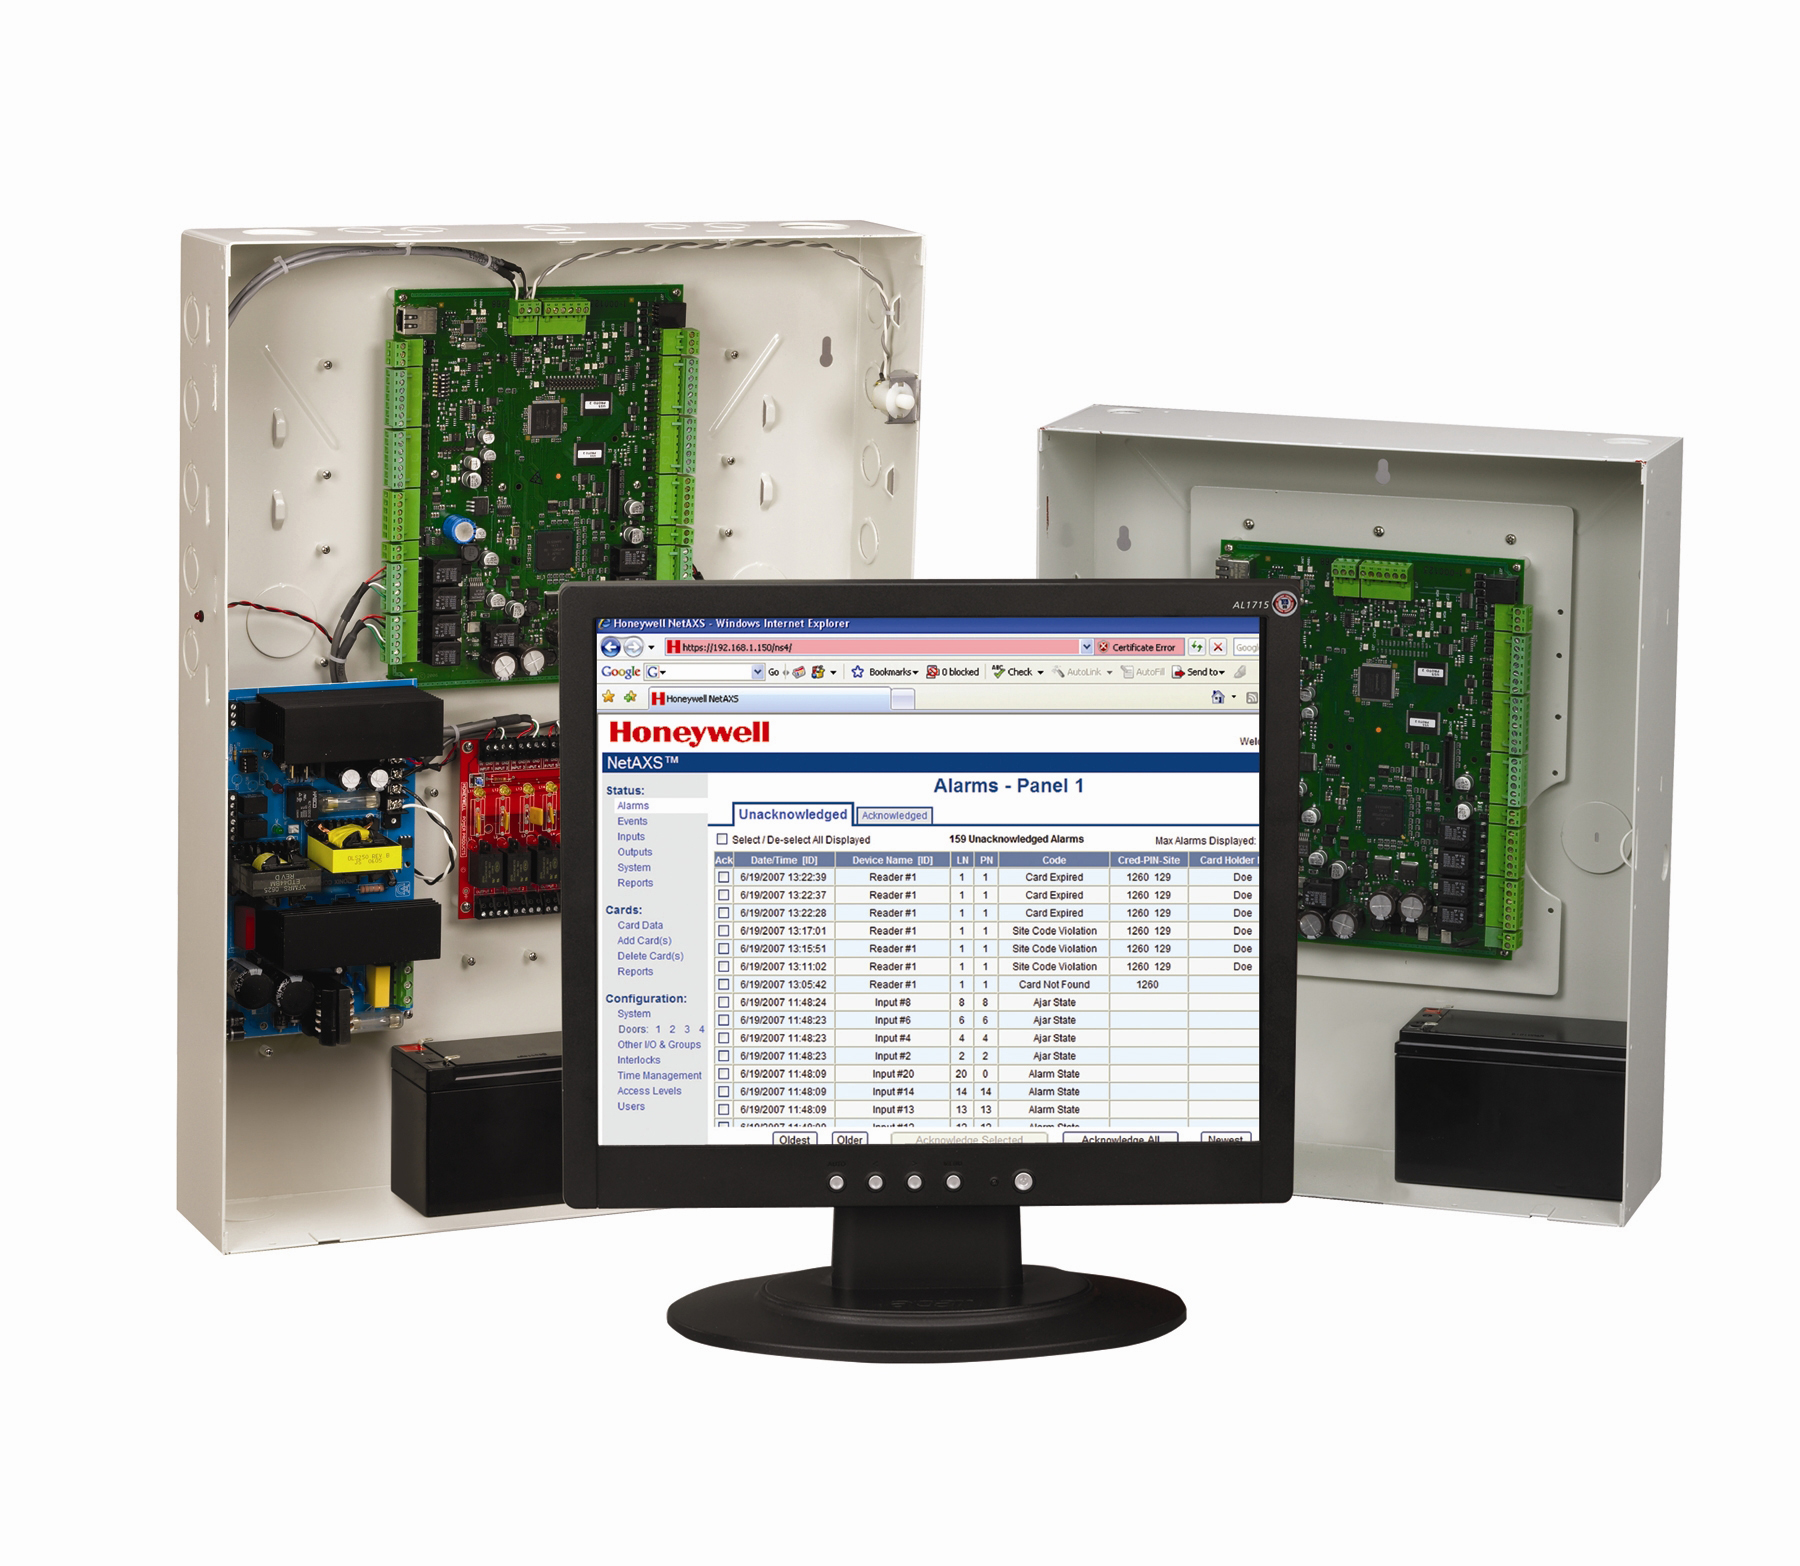 Honeywell monitoring systems